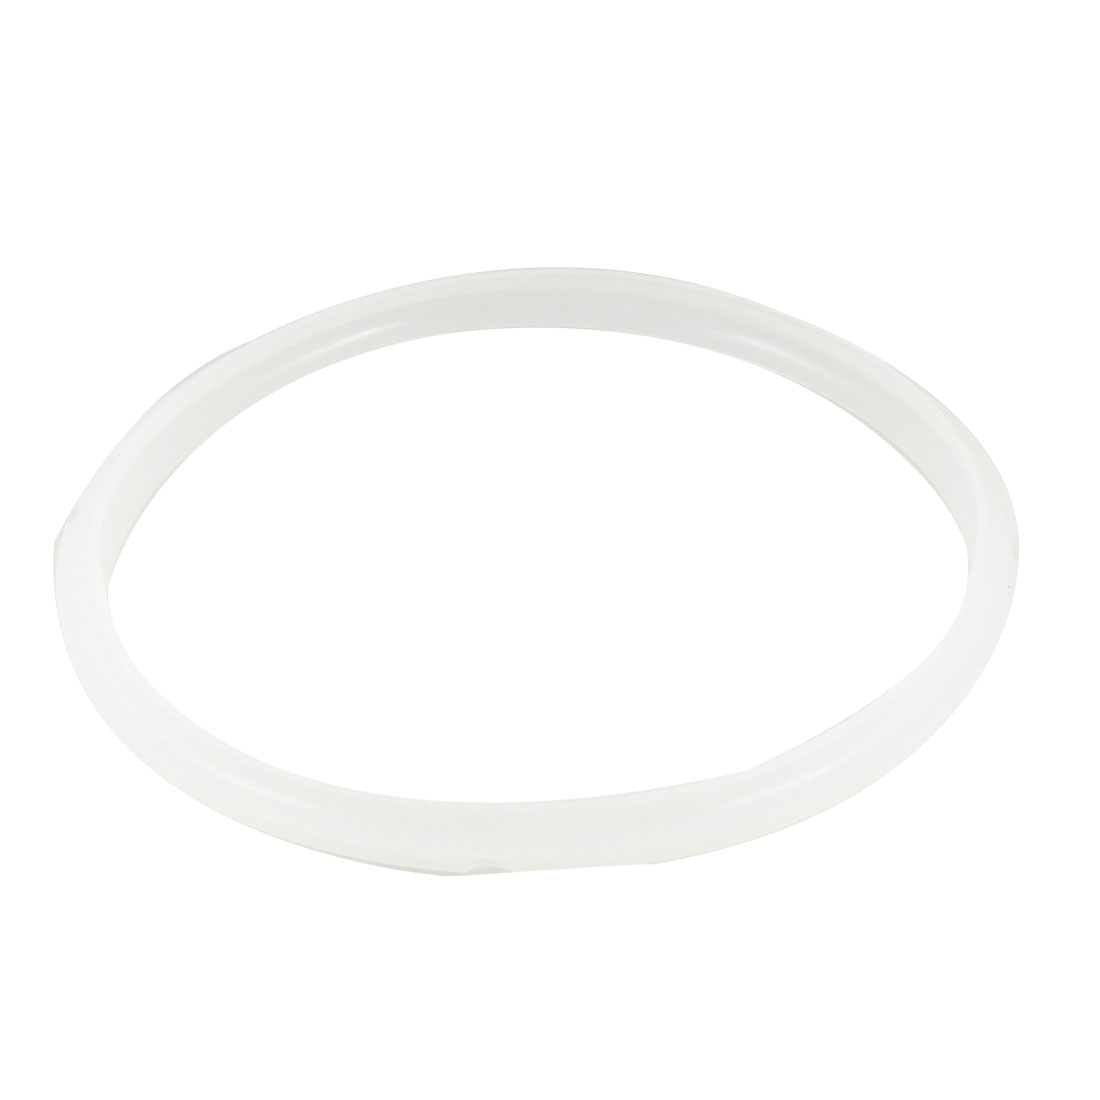 White 21.5cm Inner Dia Gasket Sealing Ring for Pressure Cookers